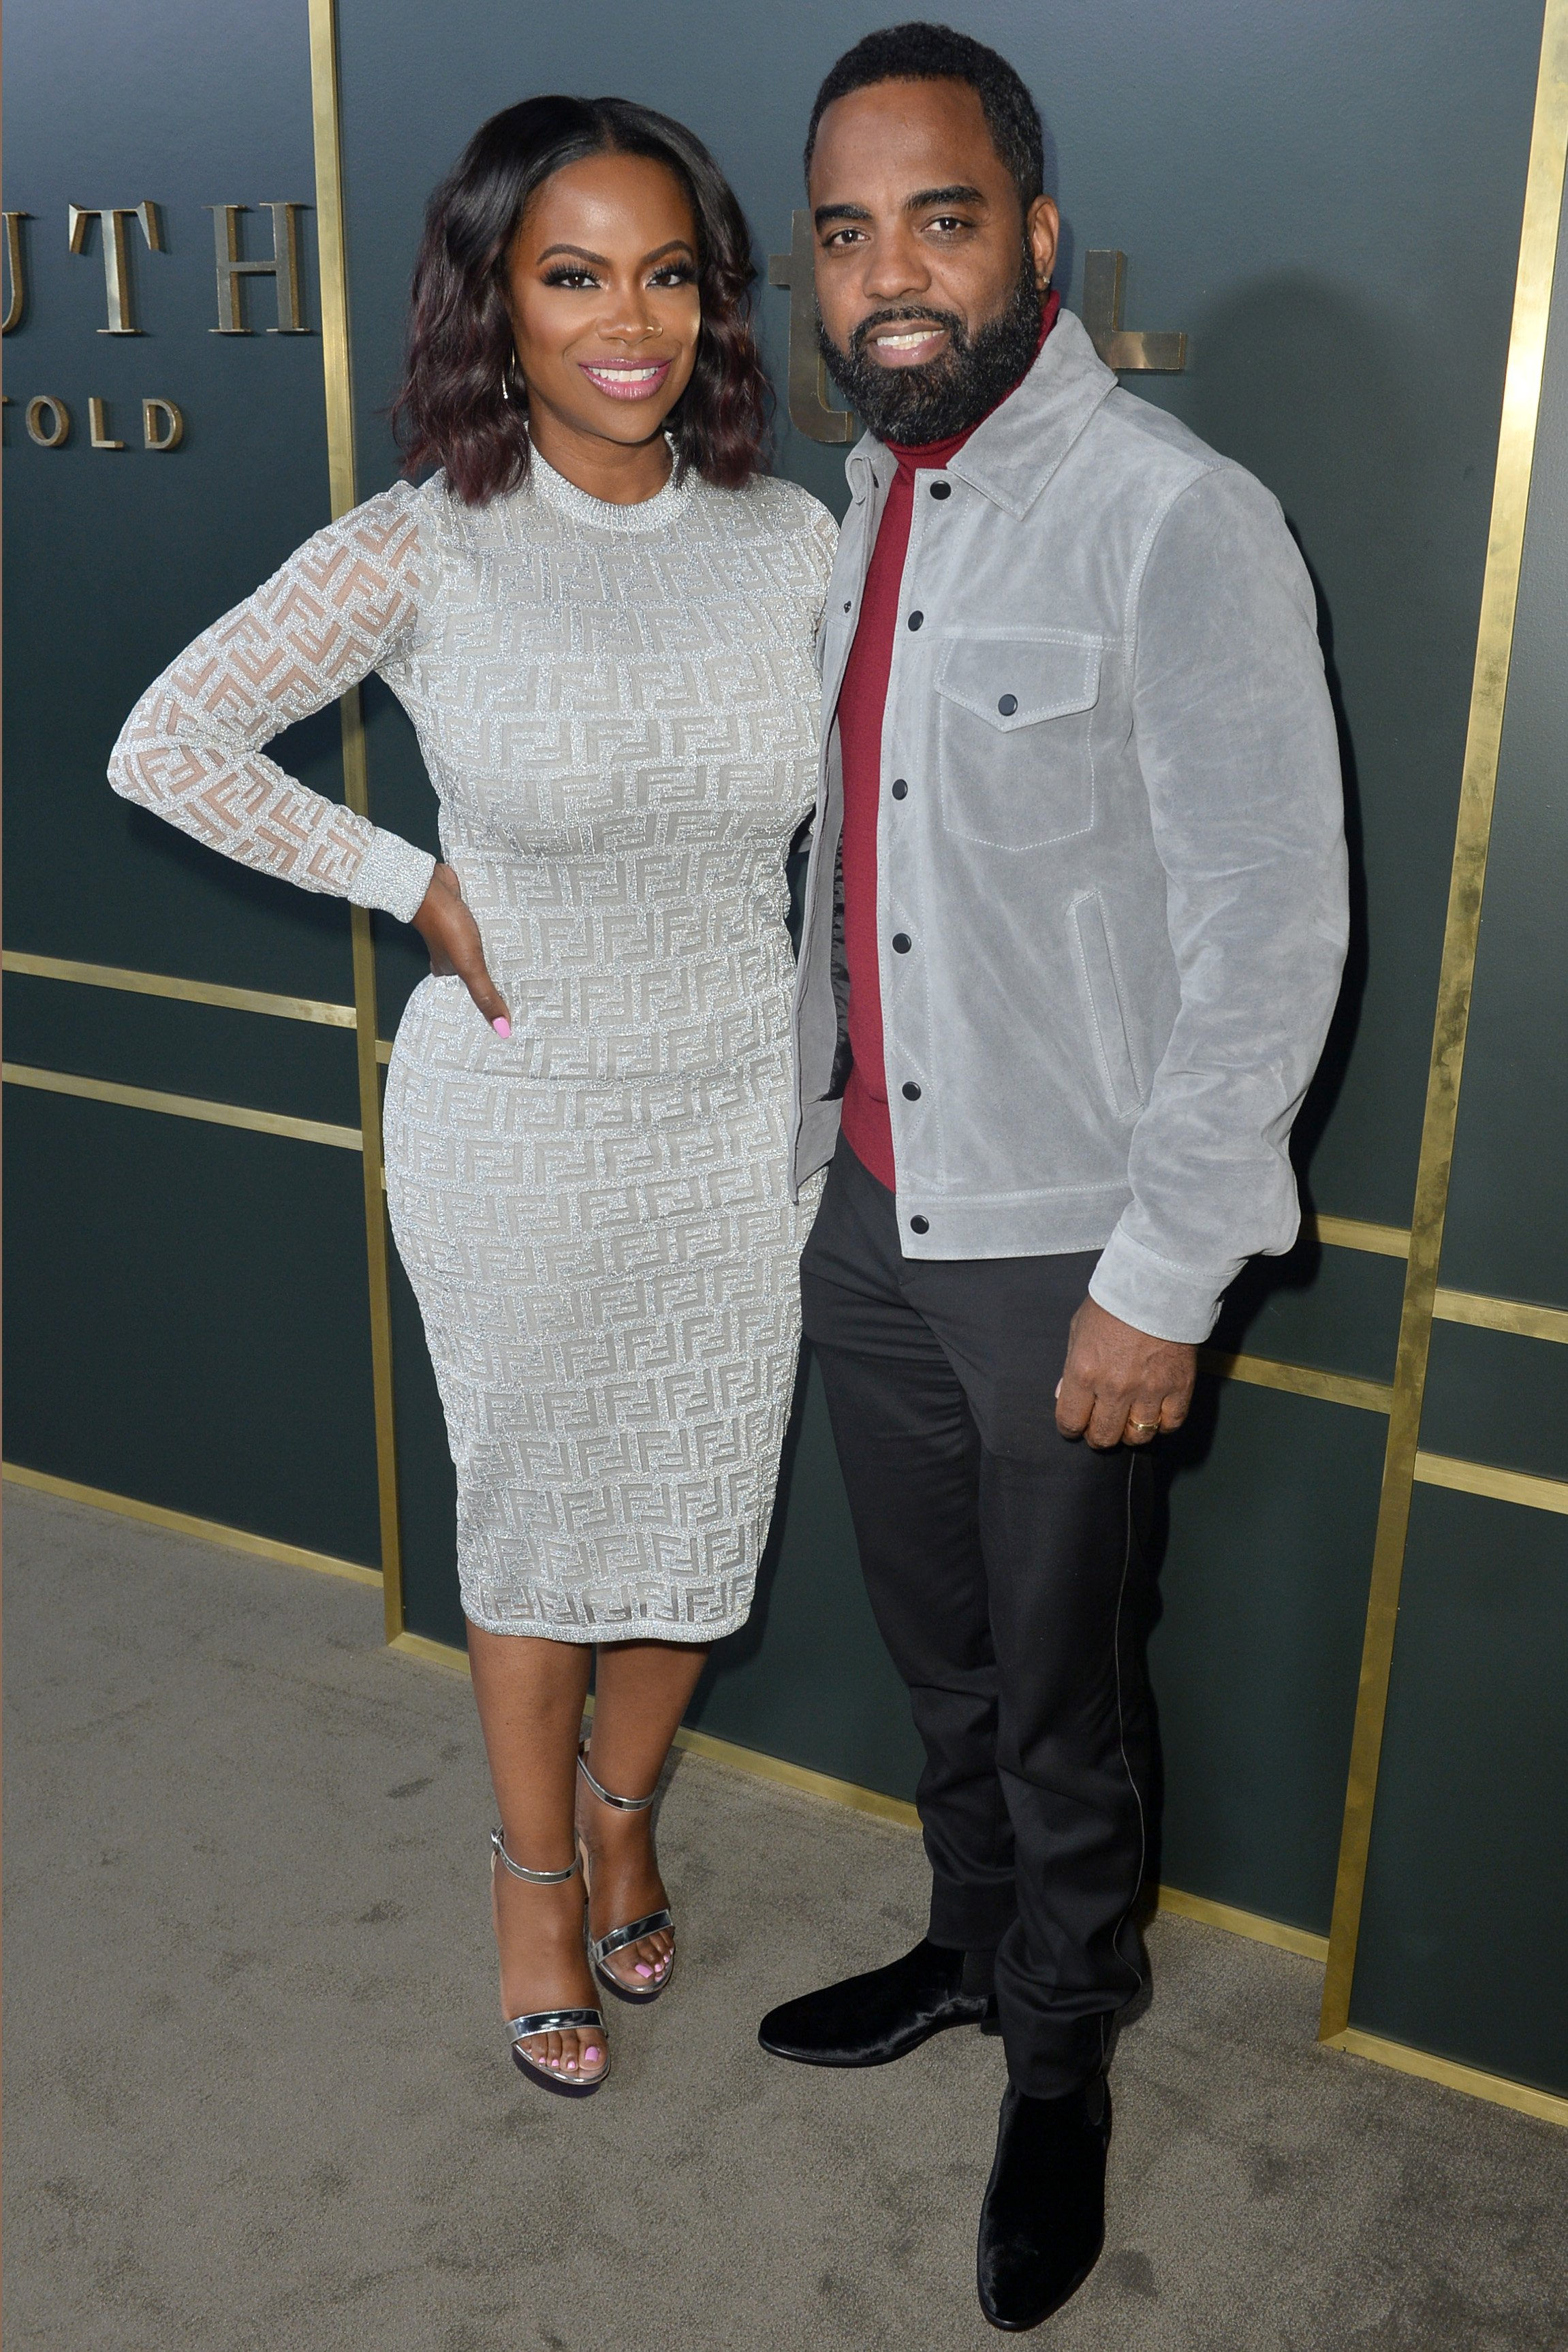 Kandi Burruss & Todd Tucker at the premiere of Apple TV+'s 'Truth Be Told' on Nov. 11, 2019 in California | Photo: Getty Images